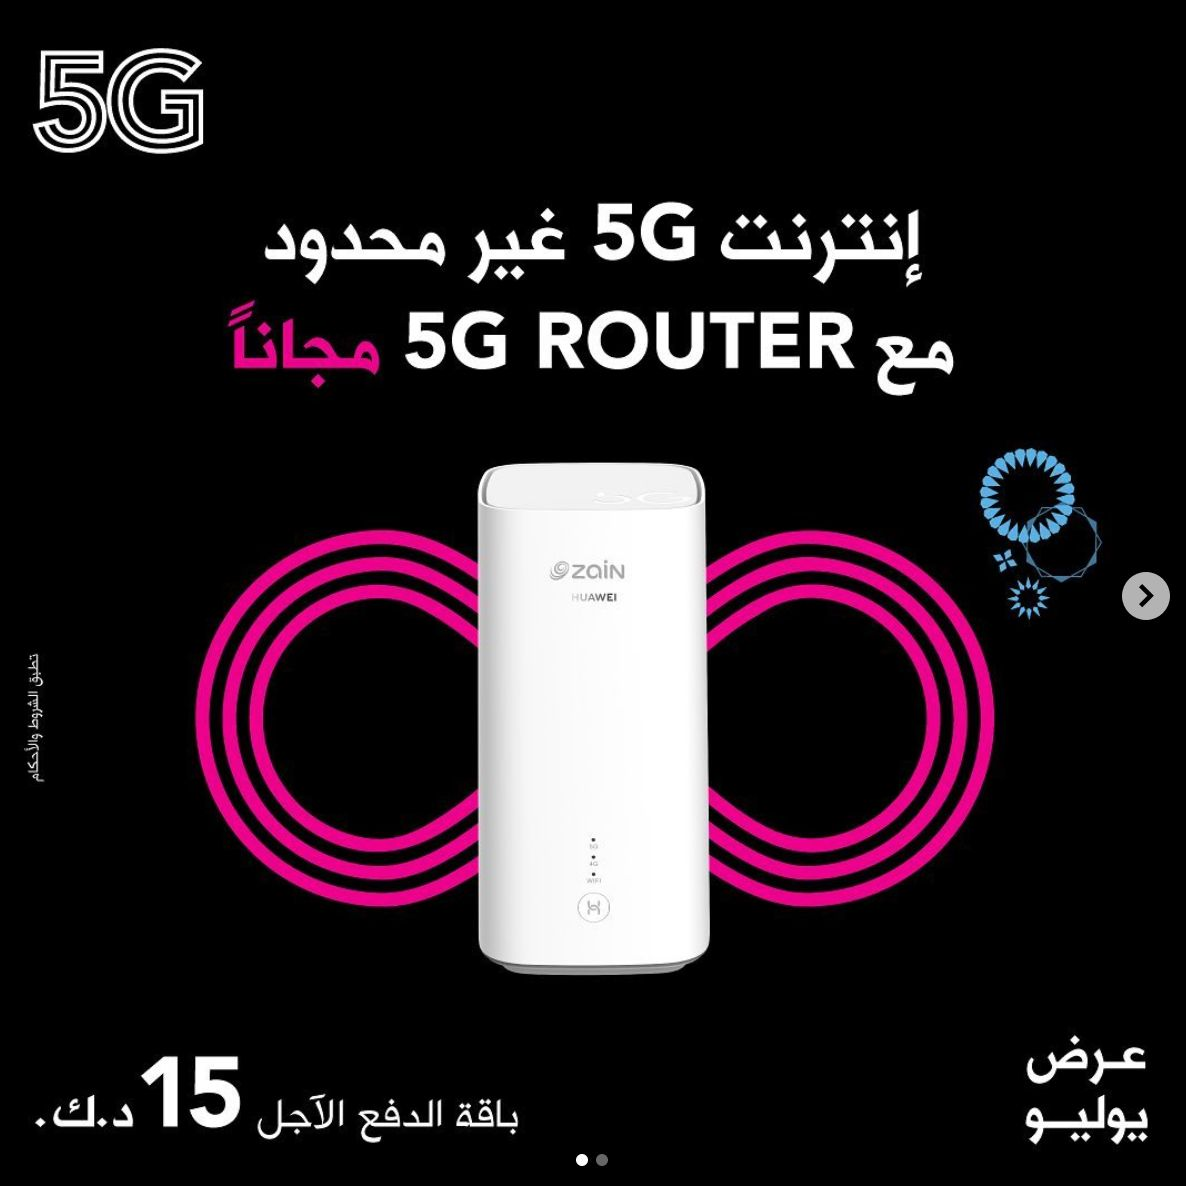 The Most Attractive Offer By Zain 5G Unlimited (10TB) for 15 KD in Kuwait -  Ryukers